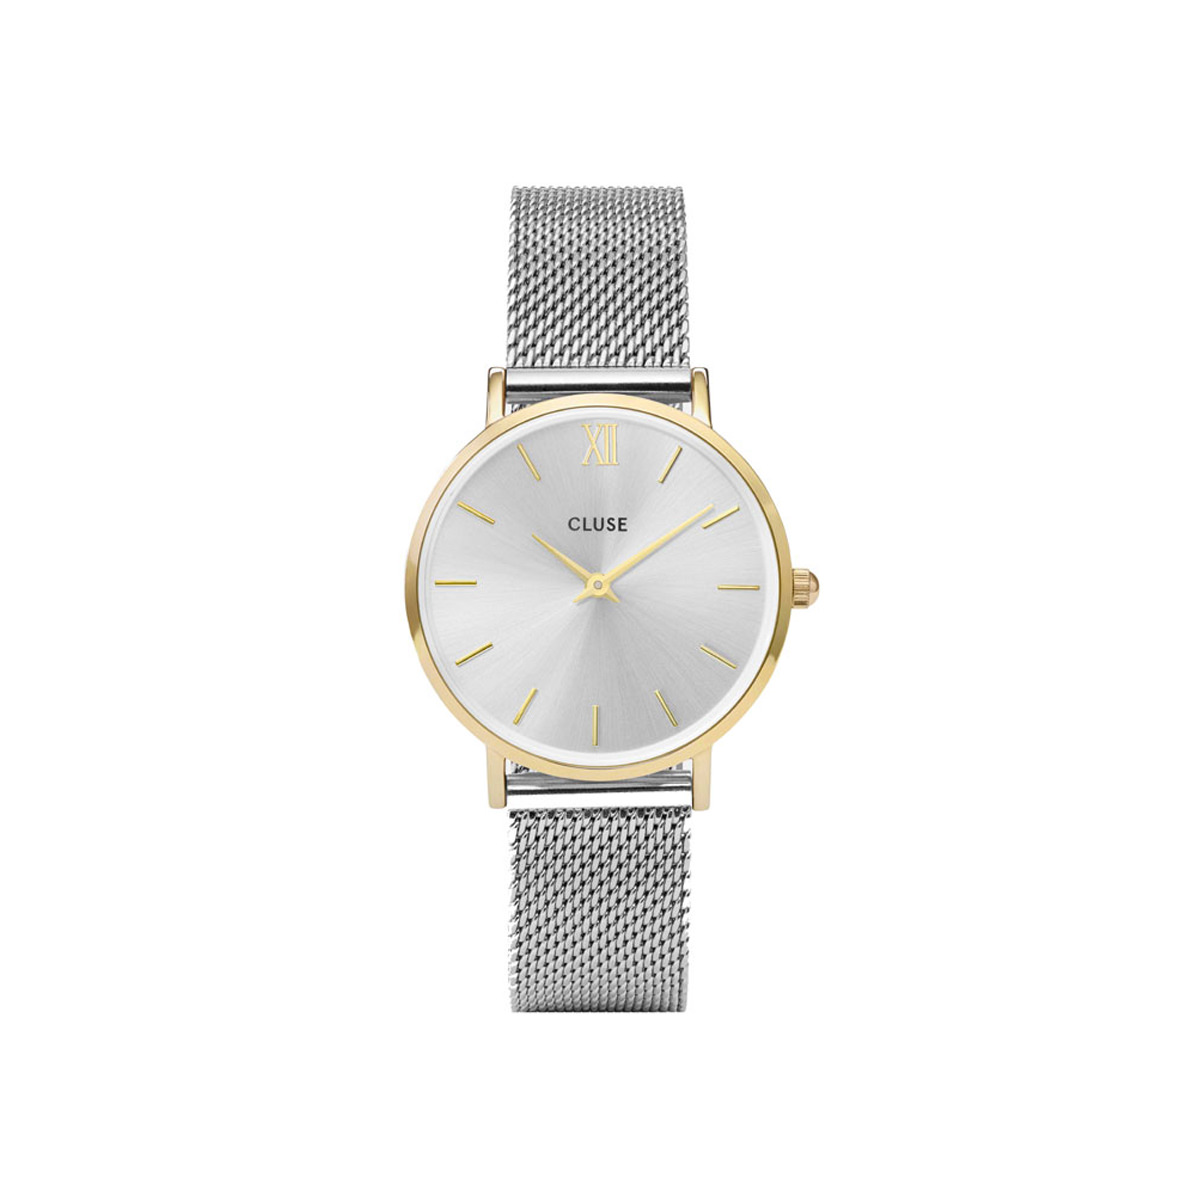 Cluse Munuit Watch - Yellow Gold & Silver